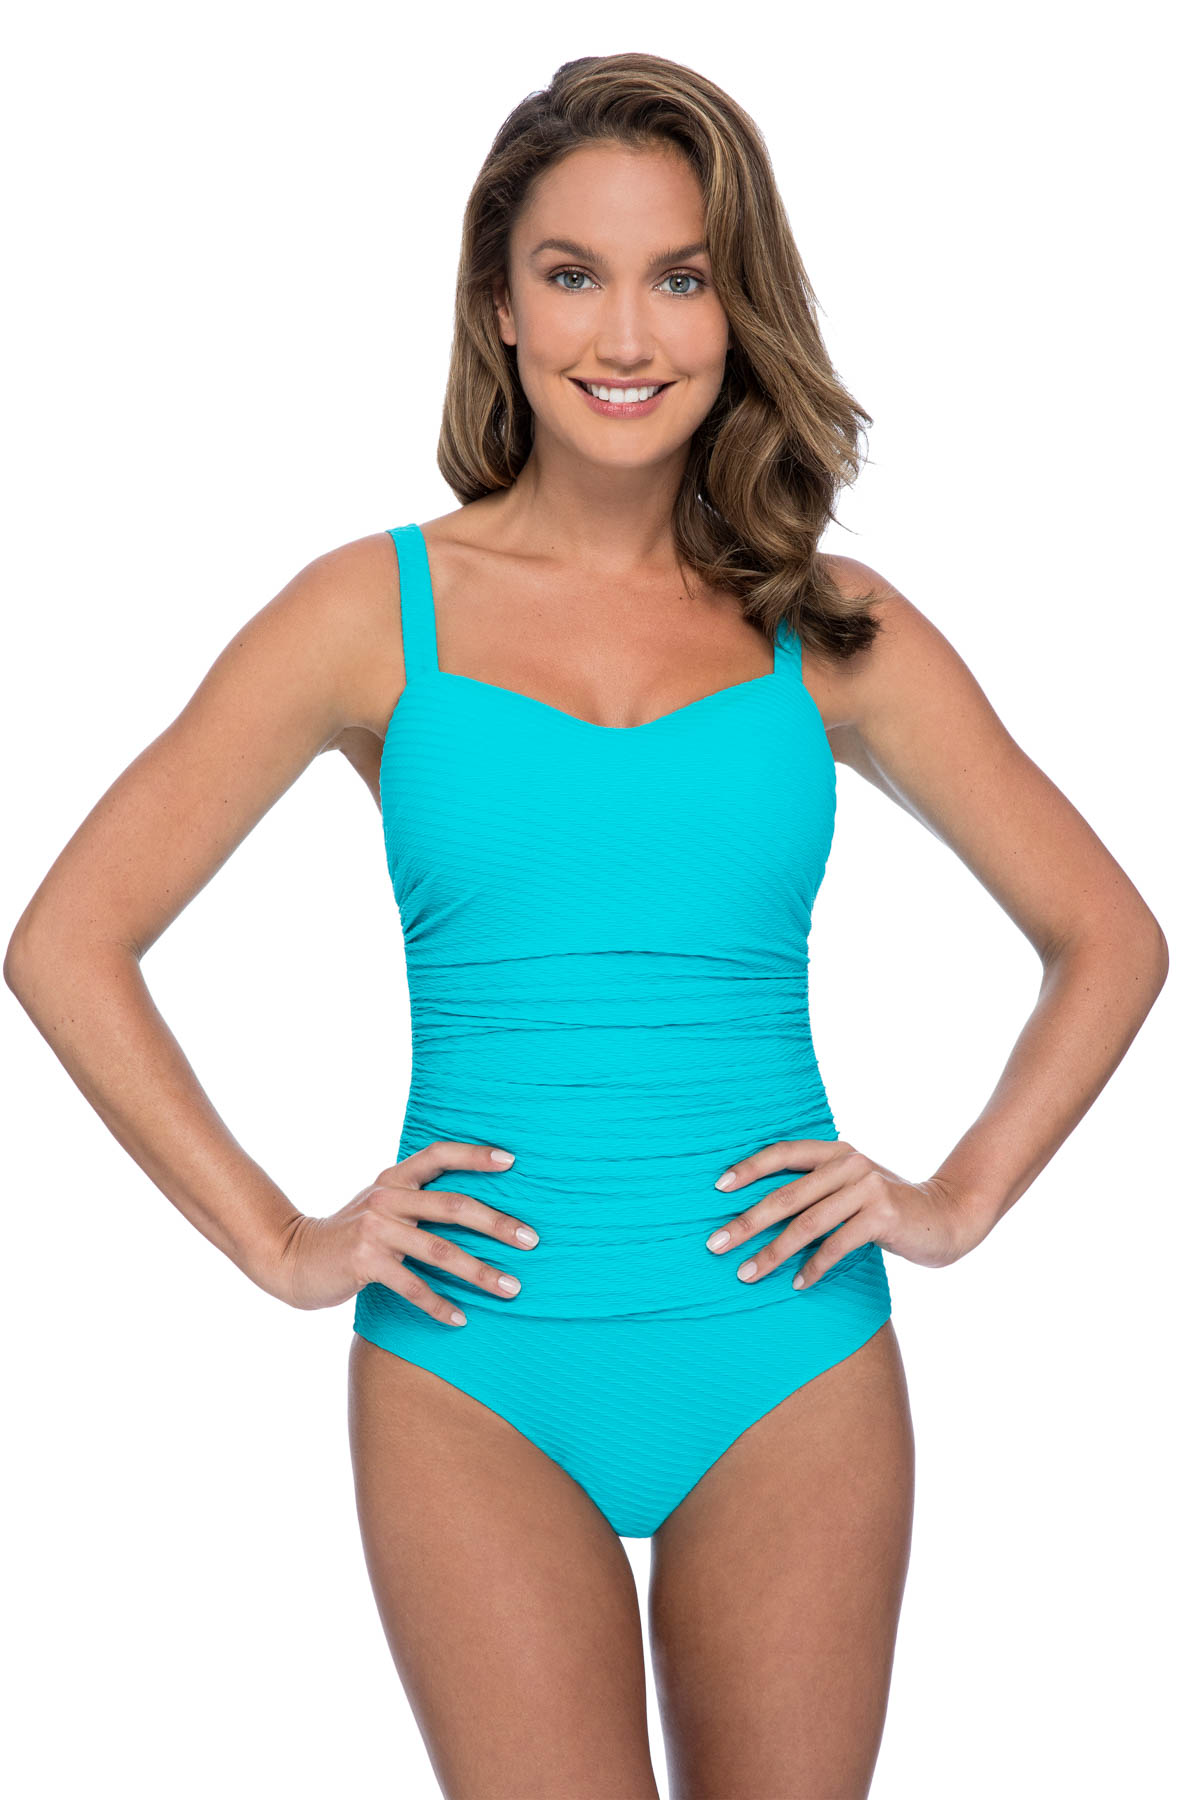 Lingerie Strap One Piece Swimsuit (D Cup) - Turquoise 1